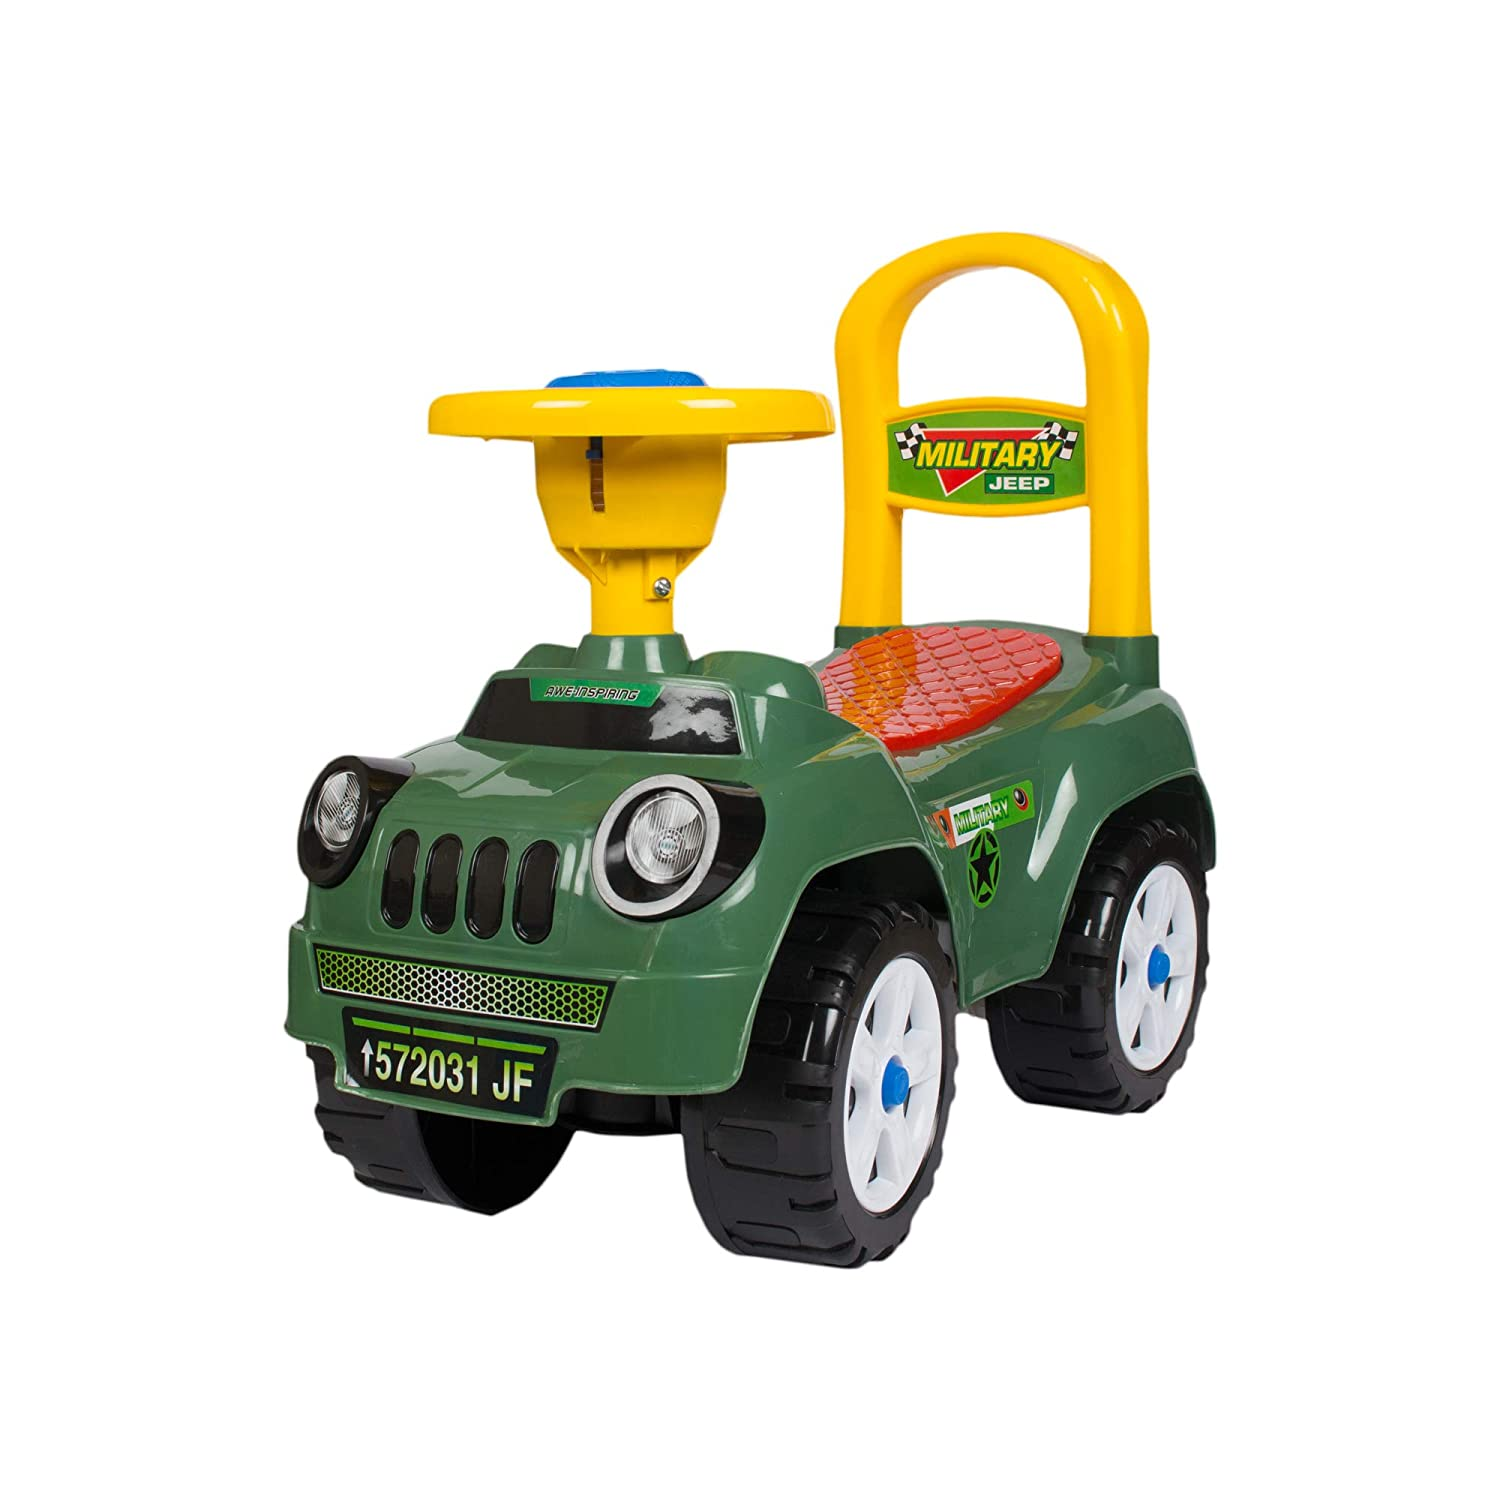 Toys Treasure Highland Jeep Ride On, Baby Car, Kids Car, Toy Car, Push Car with Whistle Sound Toy for 1 Year Old Baby